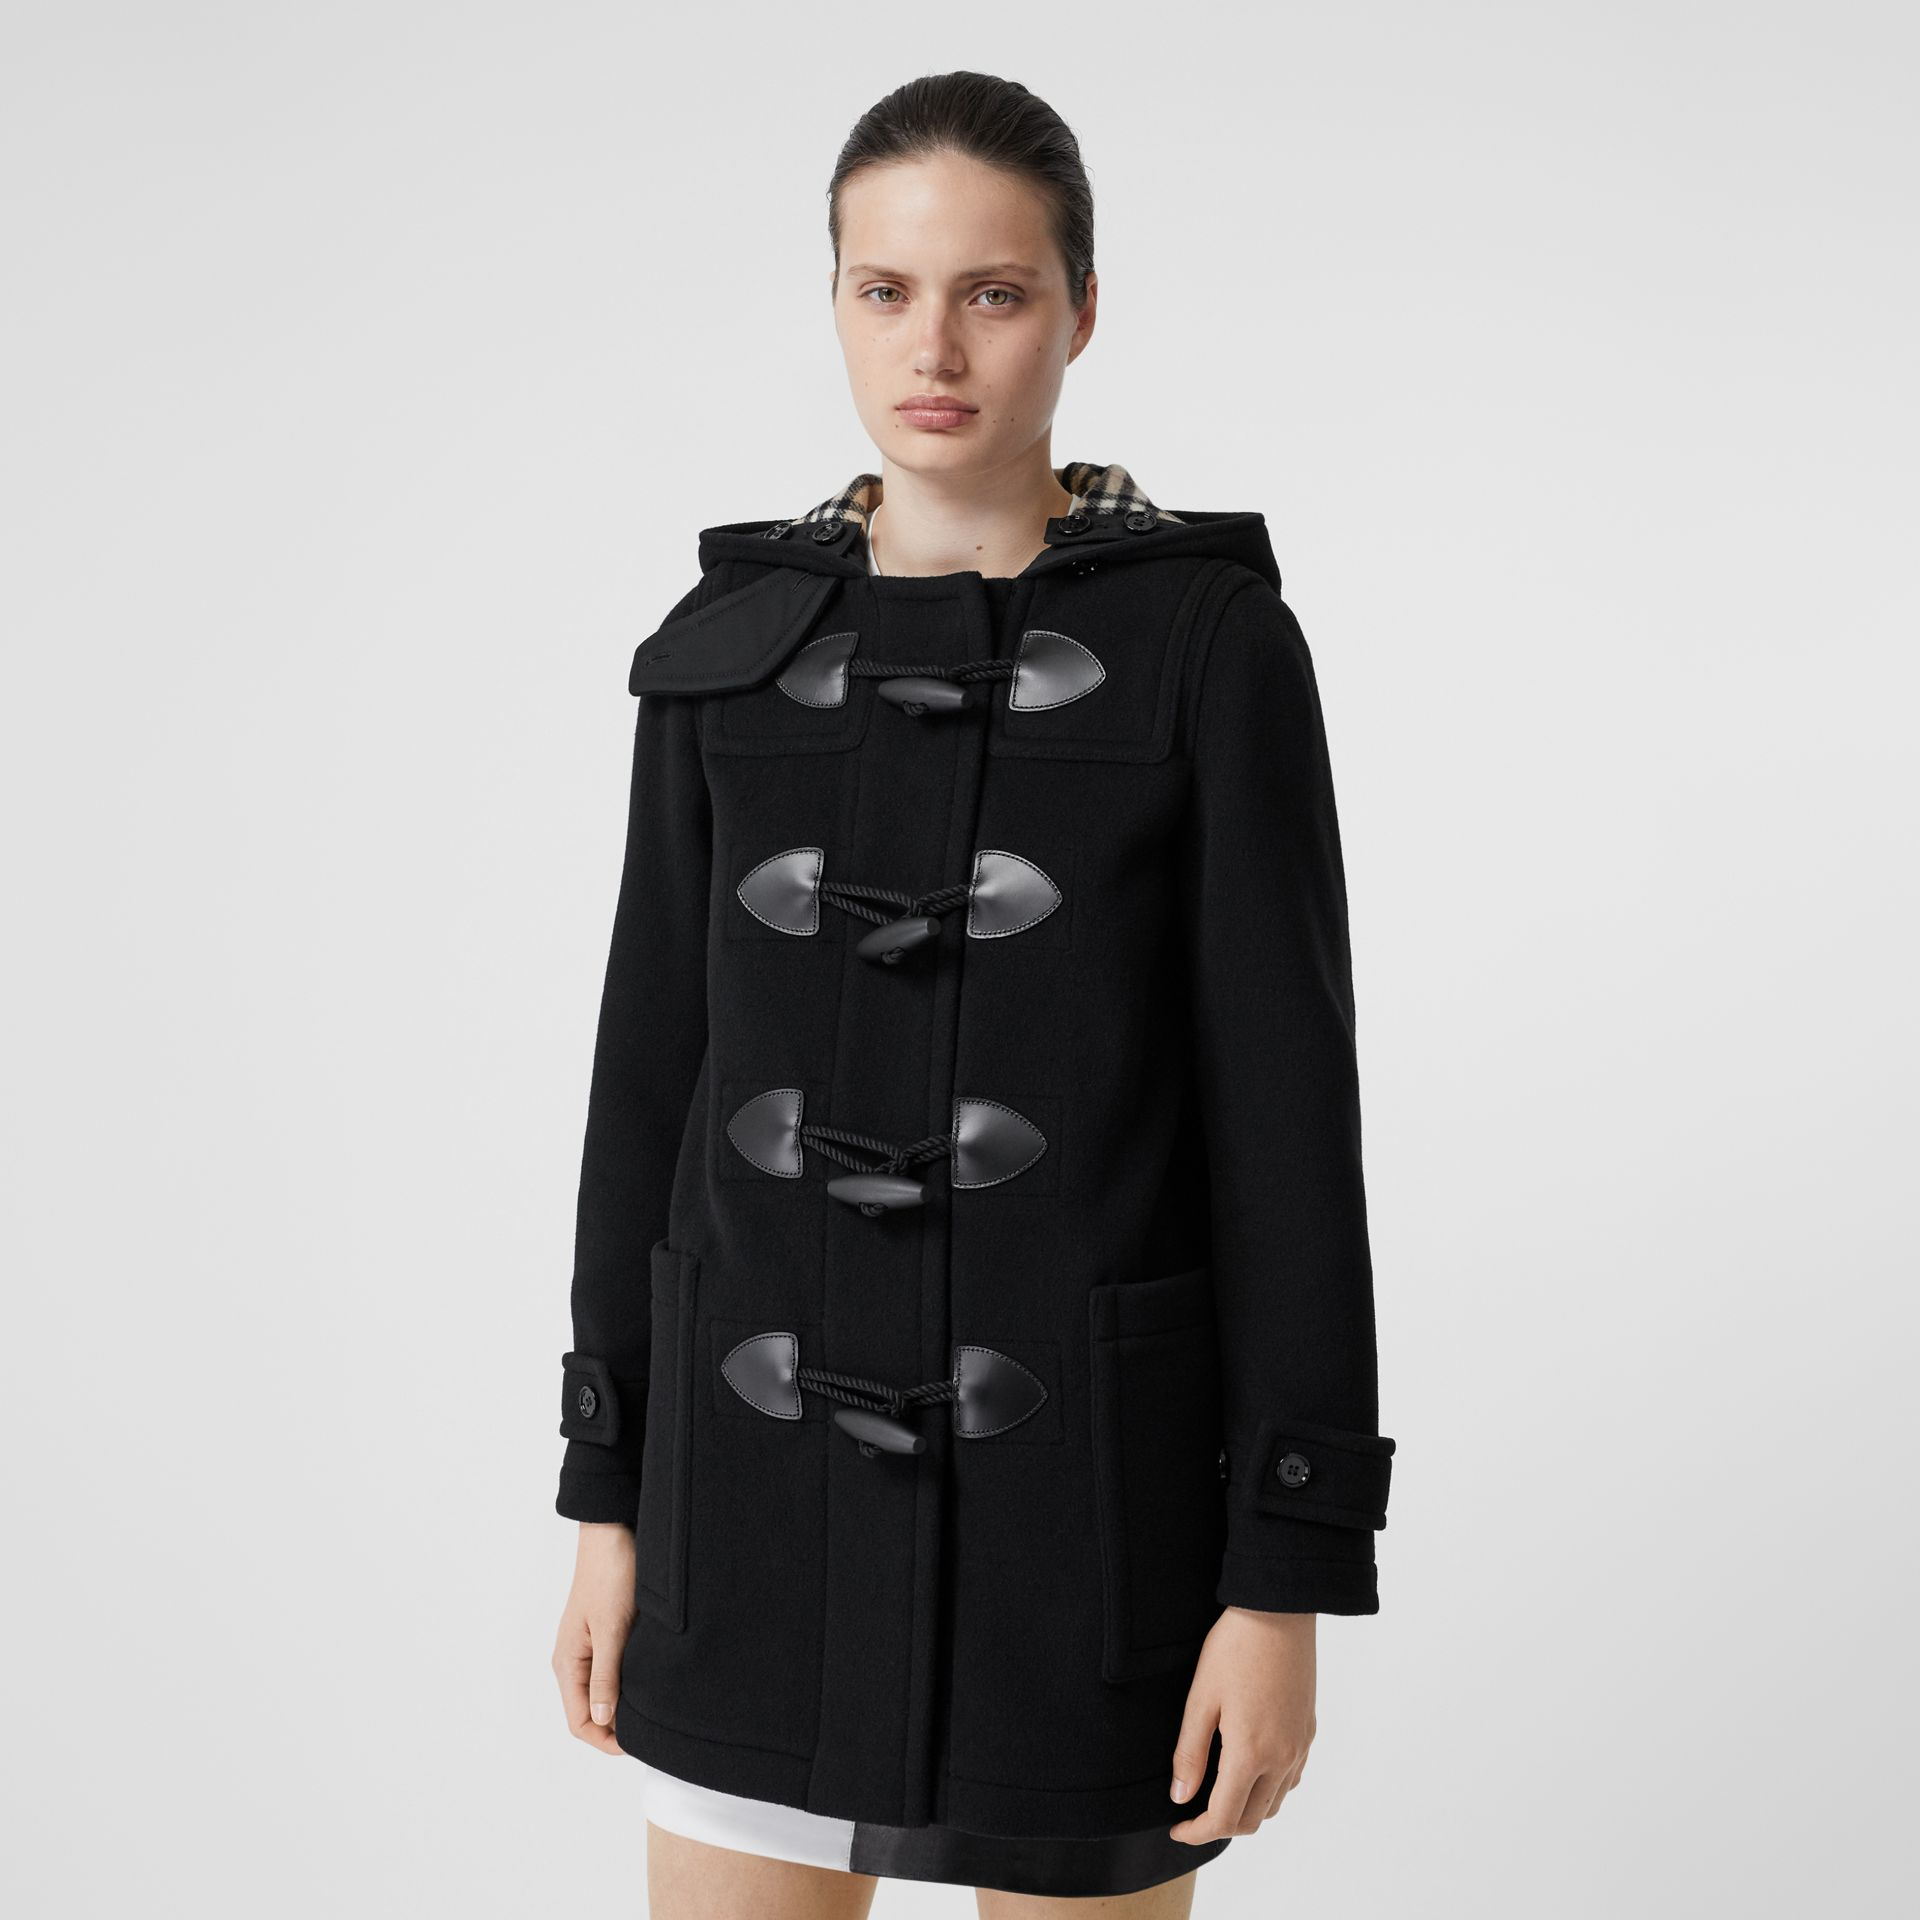 Wool Cashmere Blend Duffle Coat in Black - Women | Burberry - gallery image 5